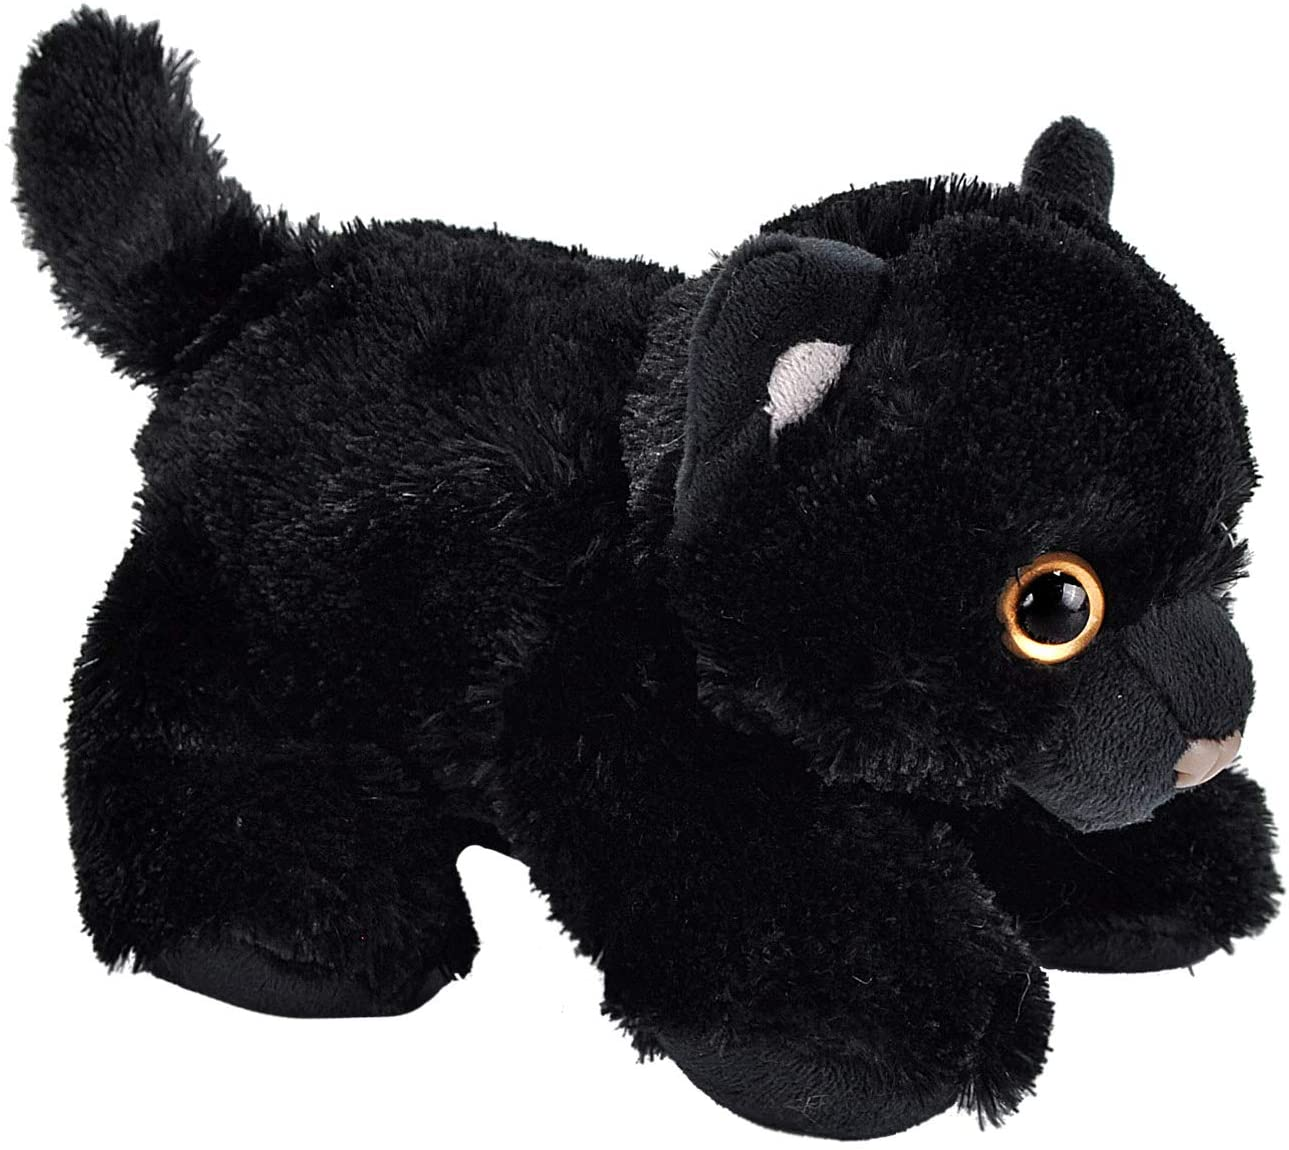 Wild Republic Black Cat Plush, Stuffed Animal, Plush Toy, Gifts for Kids, Hug'Ems 7""